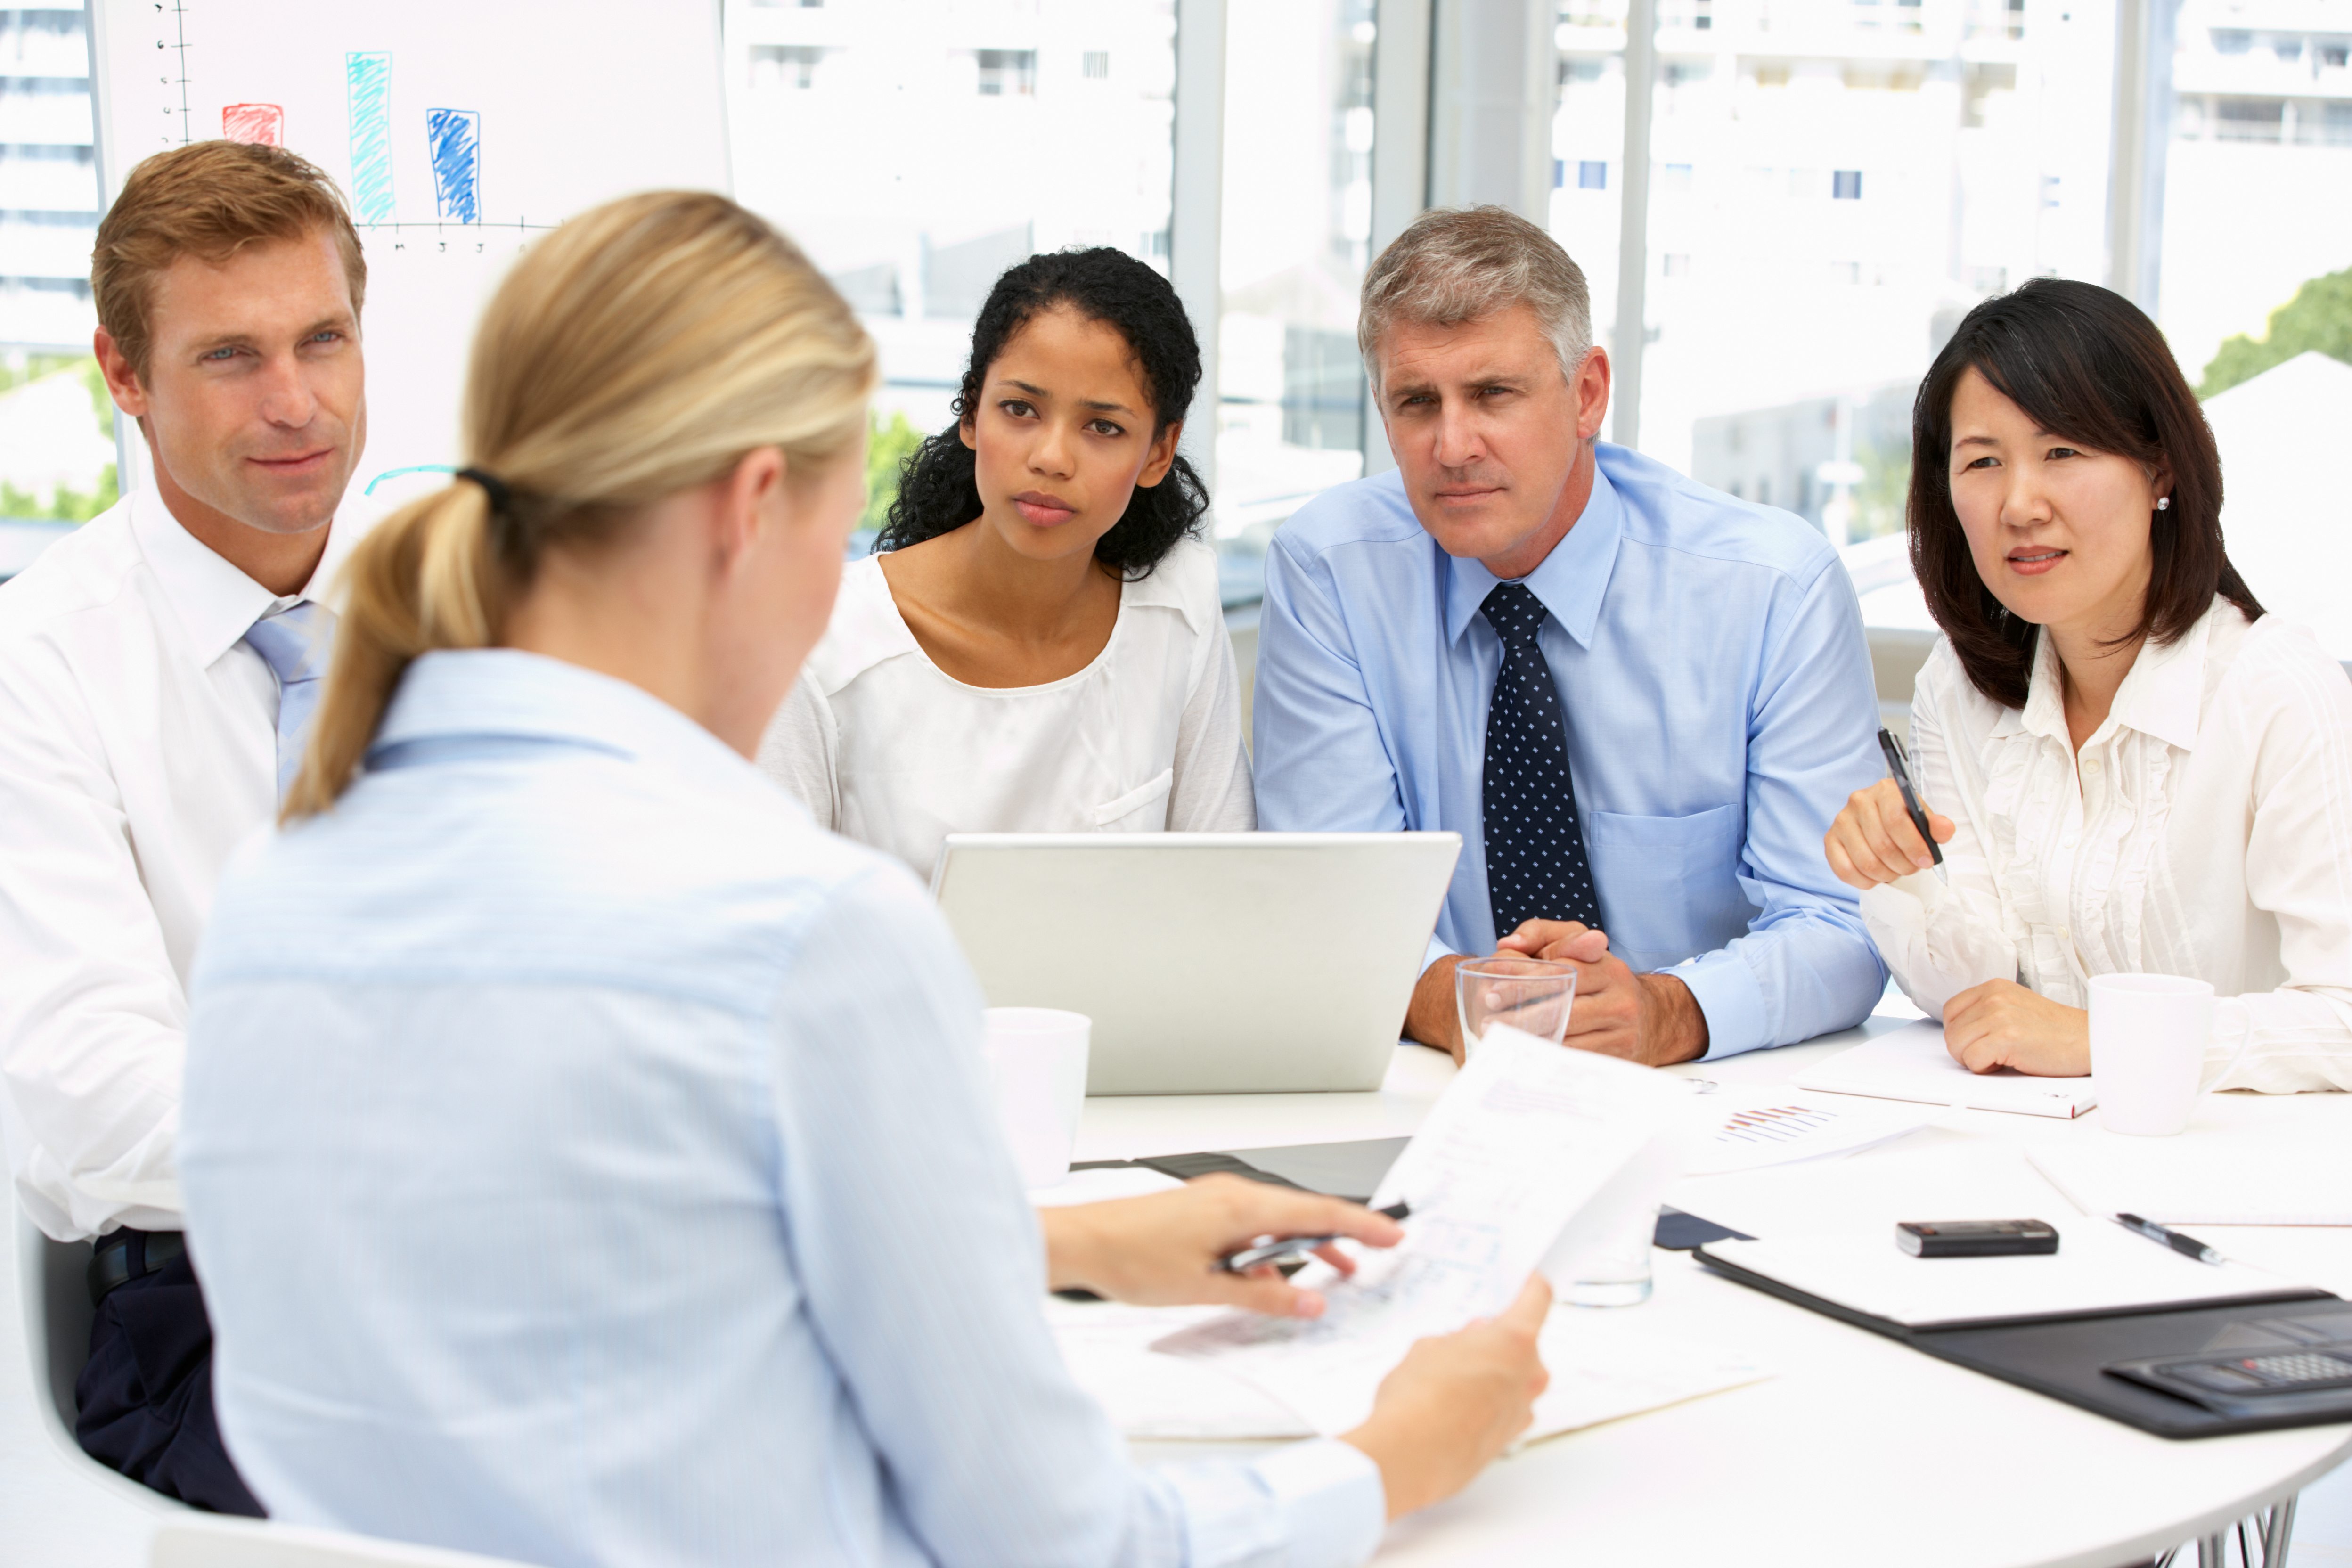 decision makers in a meeting